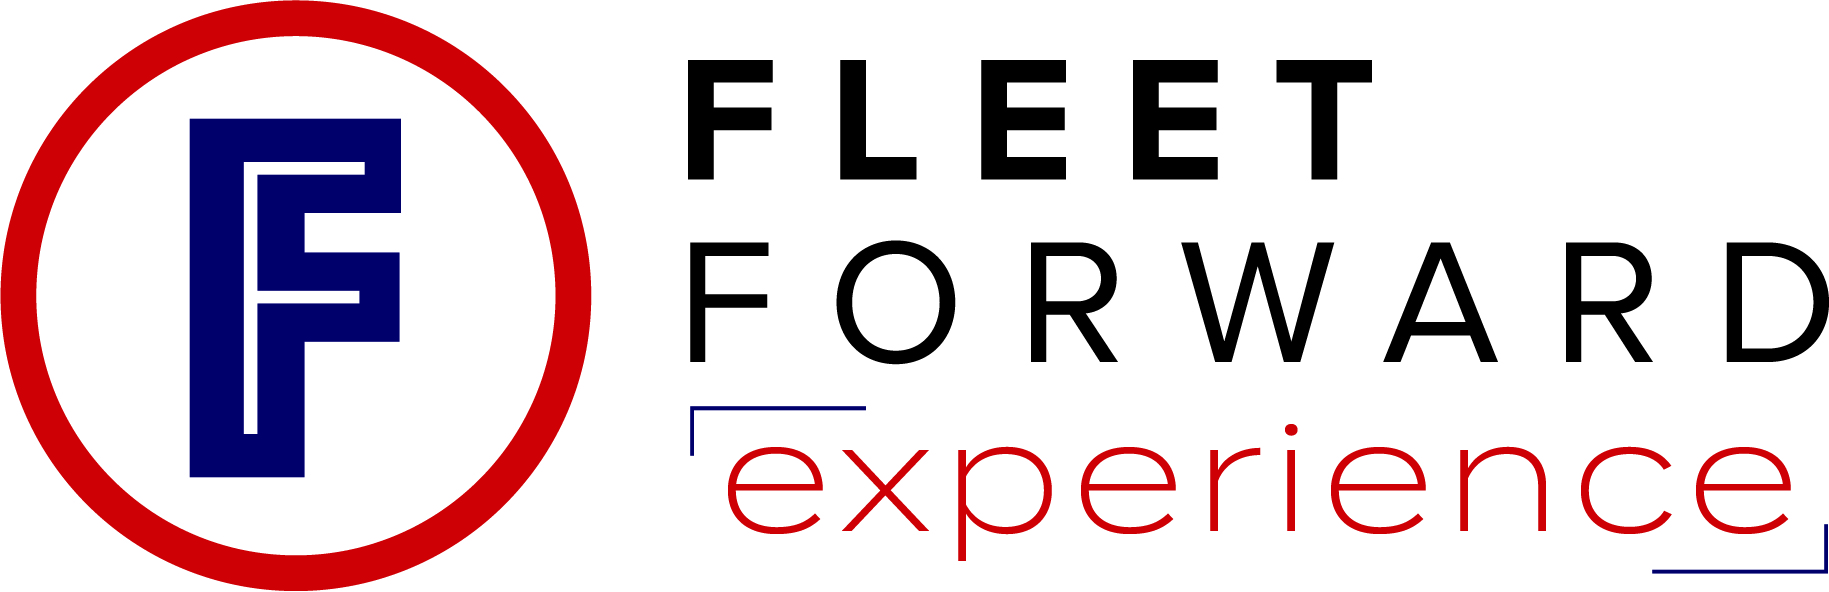 Fleet Forward Experience